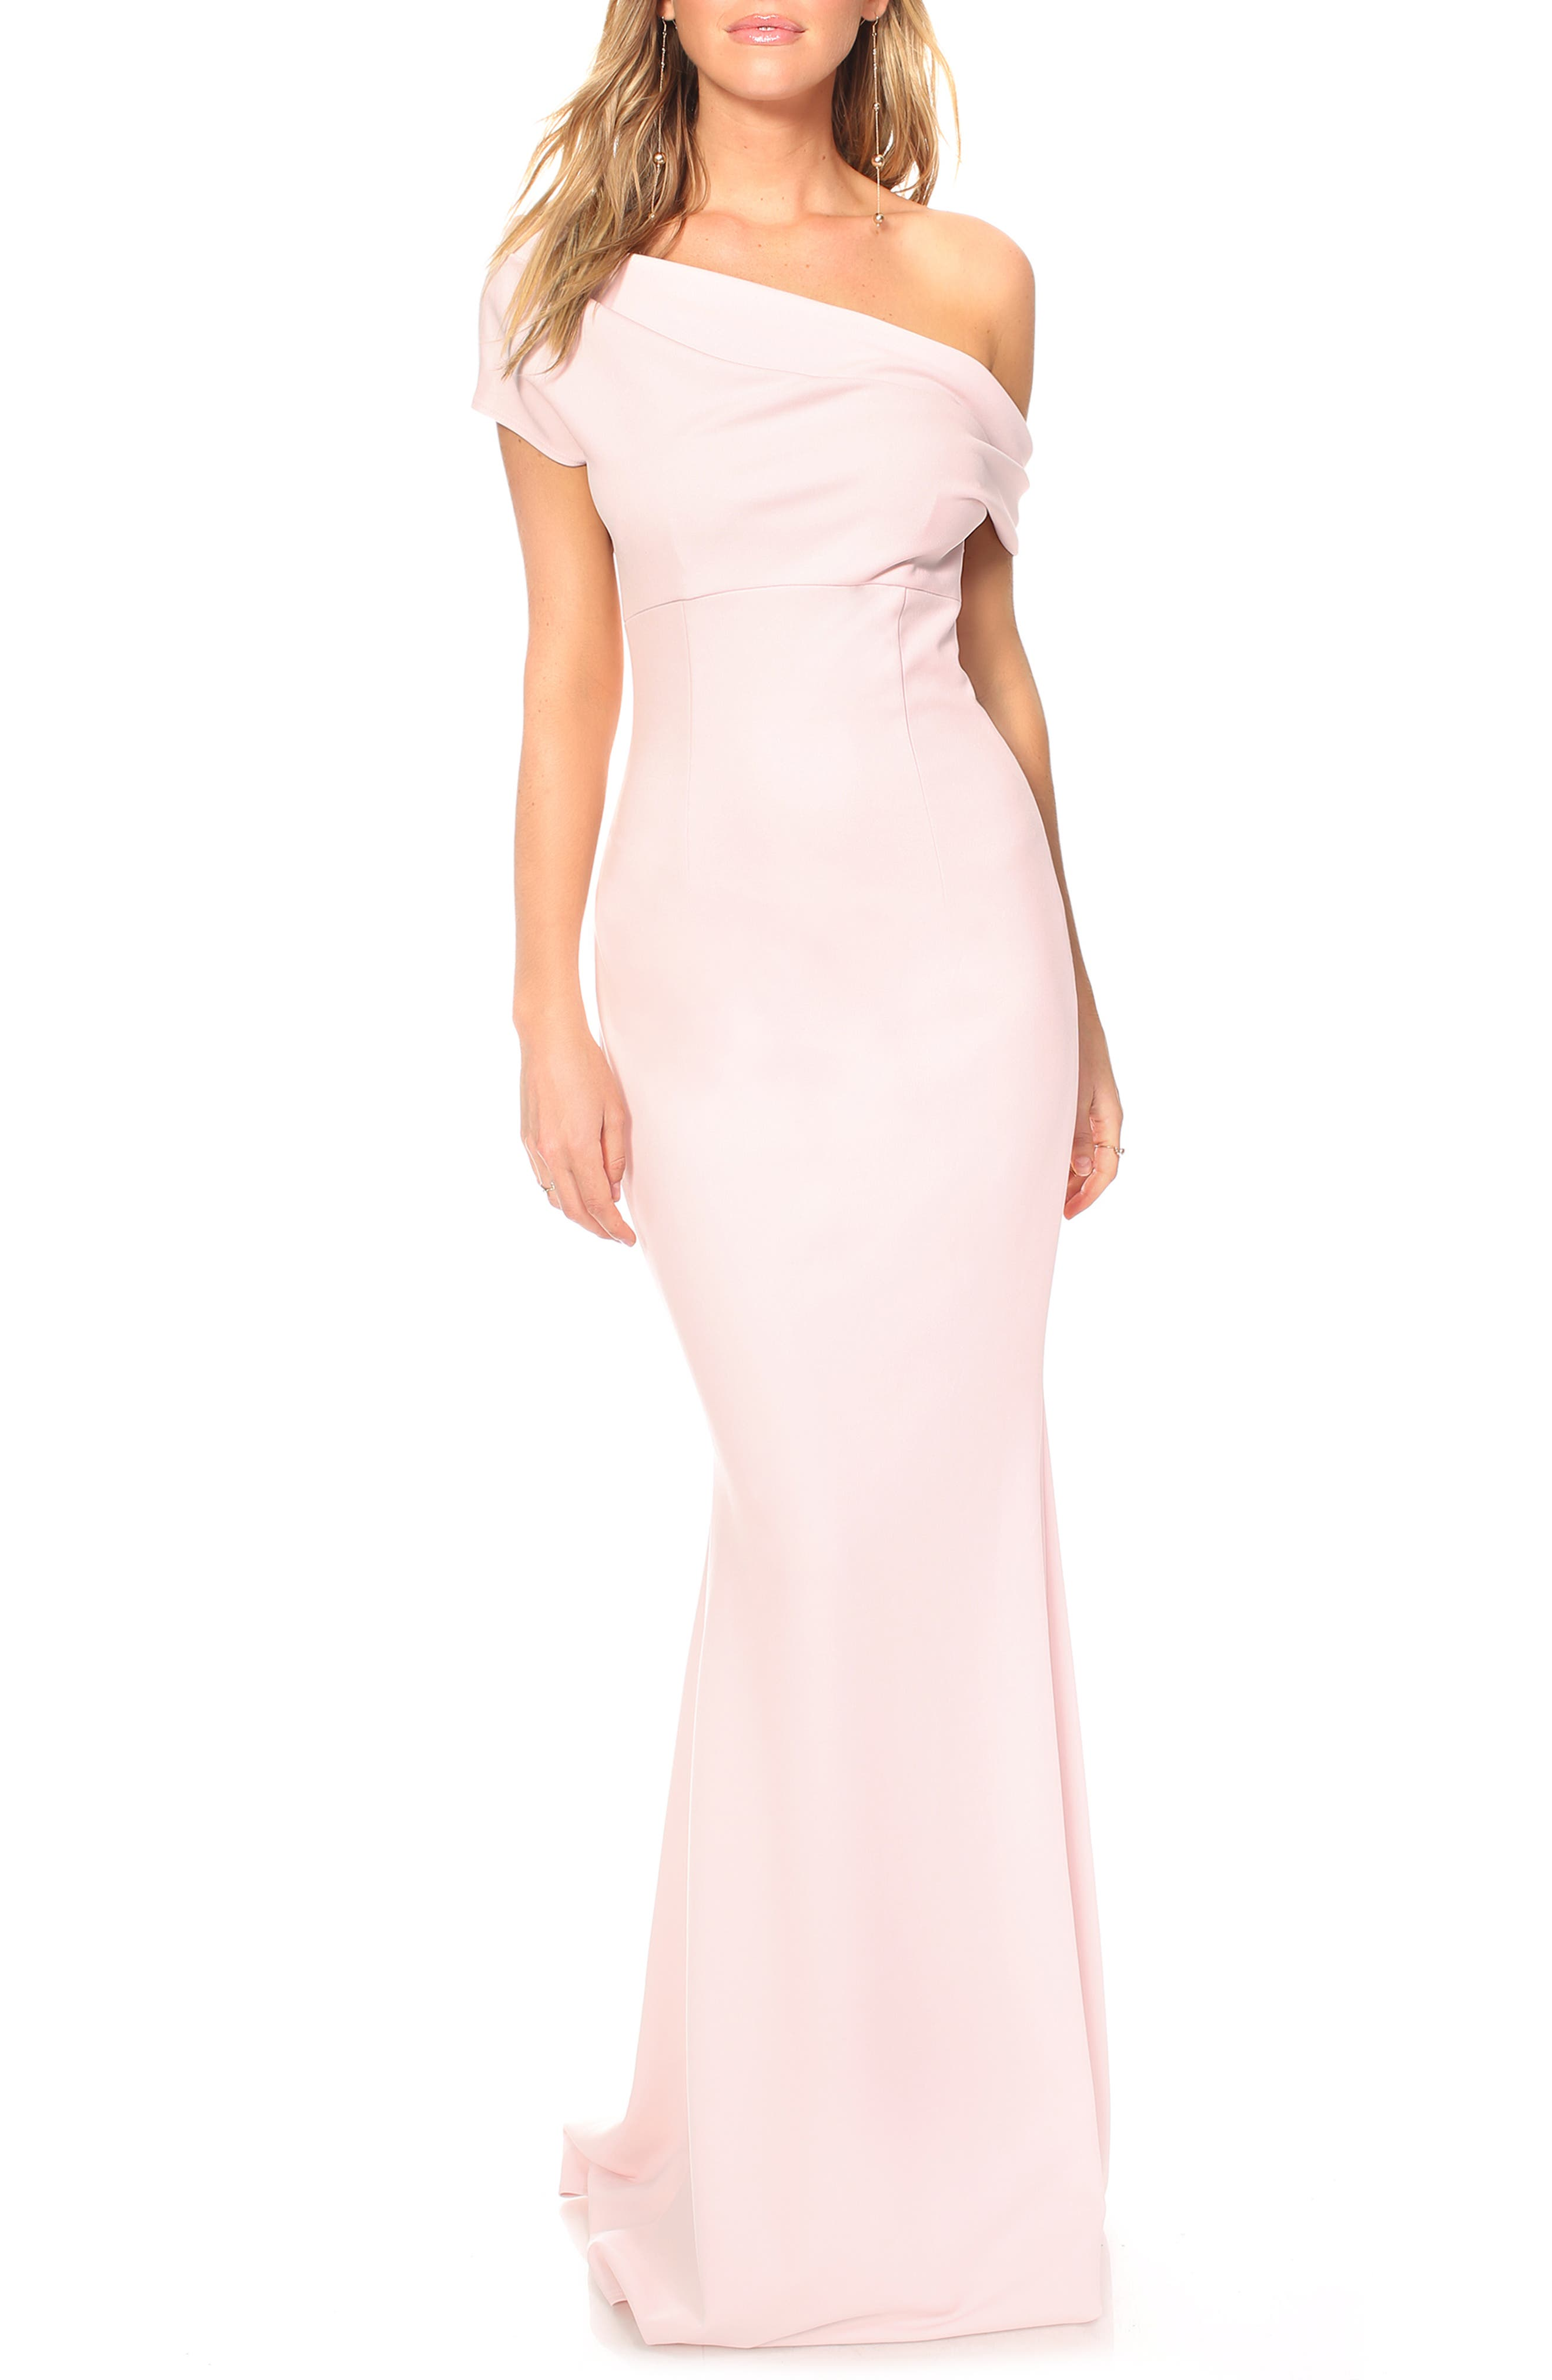 Katie May Hannah One-Shoulder Crepe Trumpet Gown, Pink